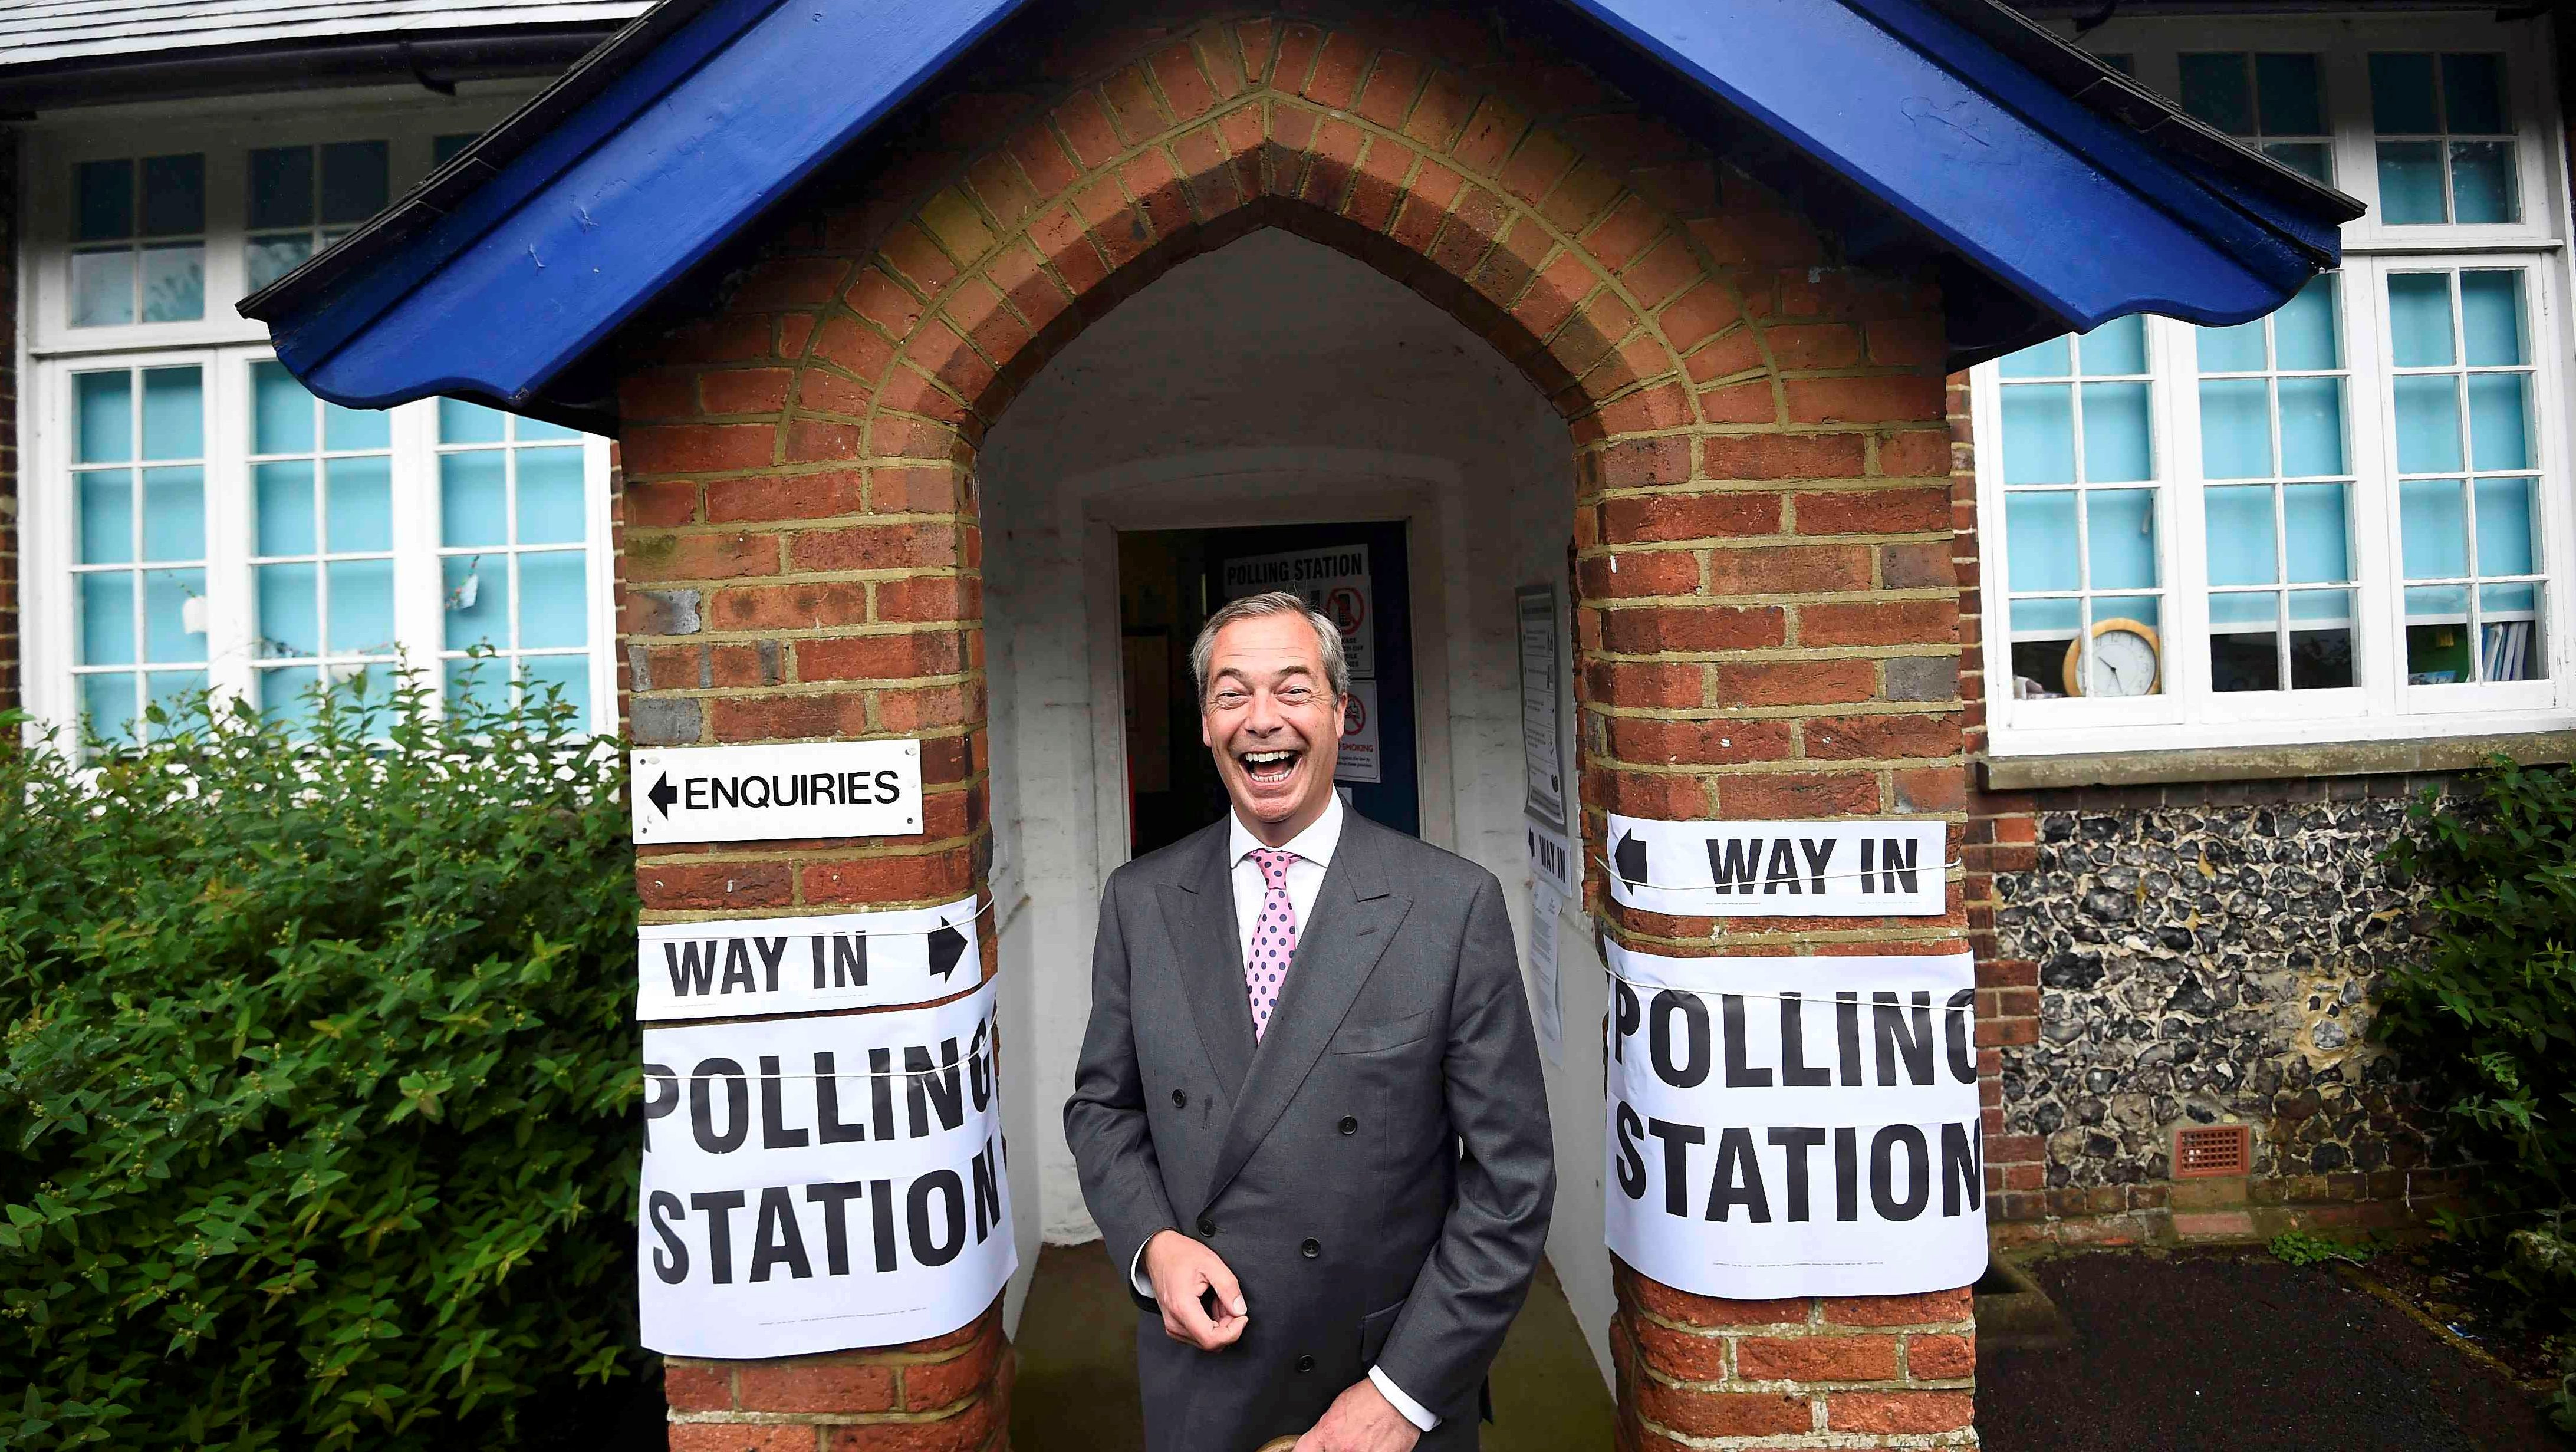 Nigel Farage, the leader of the United Kingdom Independence Party (UKIP), arrives to vote in the EU referendum, at a polling station in Biggin Hill, Britain June 23, 2016. REUTERS/Dylan Martinez/File Photo - RTX2I01Q